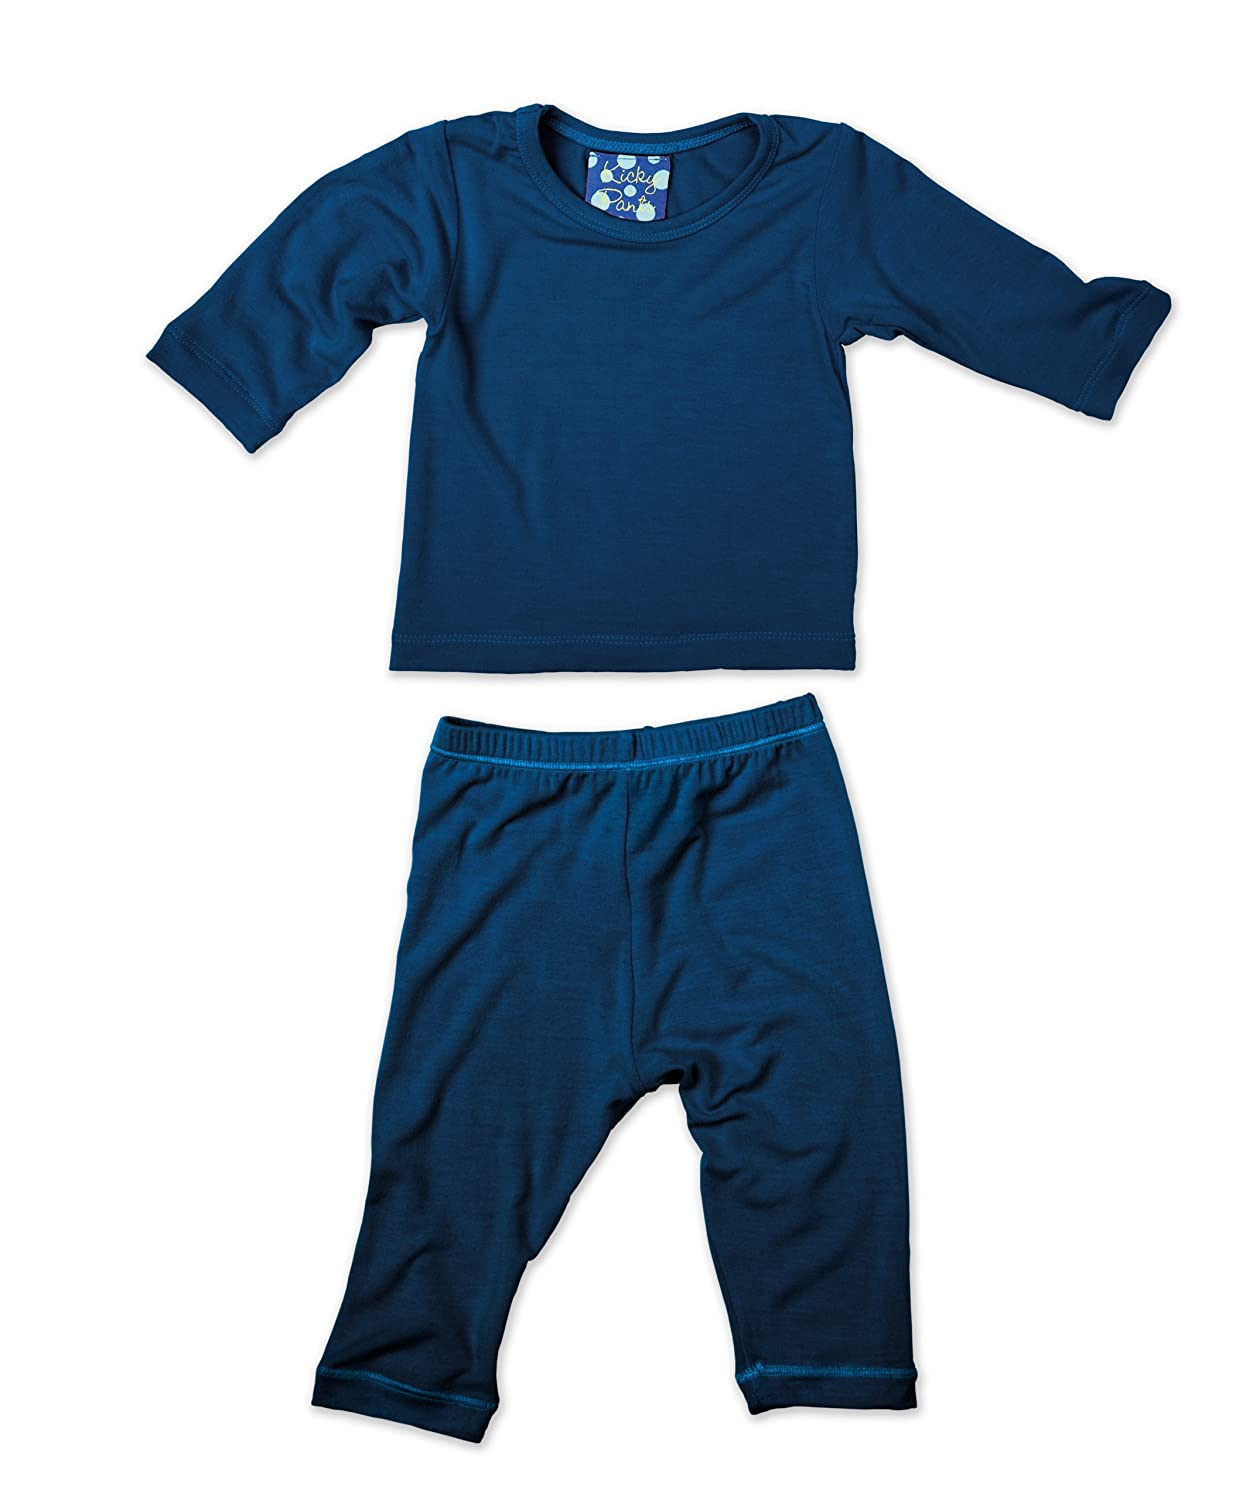 KicKee Pants Long Sleeved Pajama Set, Twilight KicKeePants PRD-KPLPJ108-TNPARENT